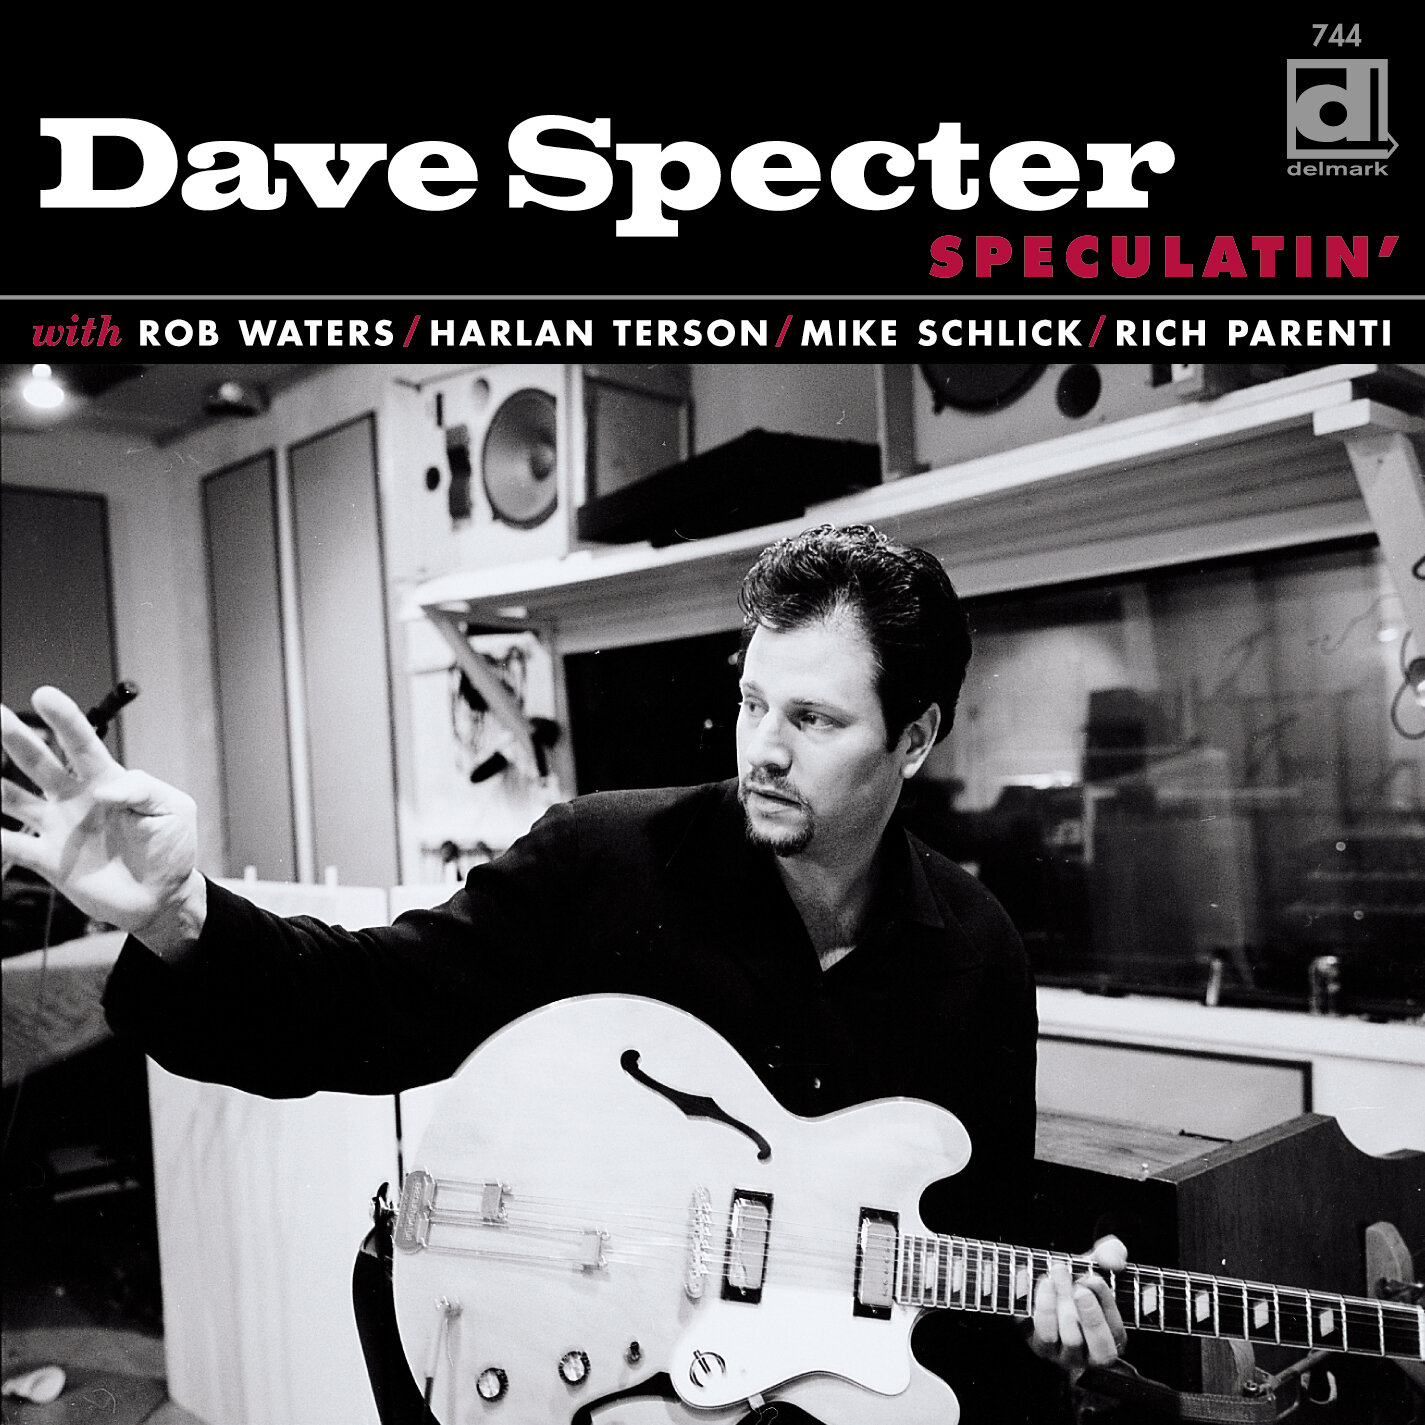 SPECULATIN' - Guitarist Dave Specter has always straddled the blues-jazz fence with a hip disregard for arbitrary restrictions. On Speculatin', his sixth Delmark CD, Dave has put his distinctive mark on a collection of outstanding instrumental tunes from all corners of these related genres, tossing in a latin beat and some greasy organ in addition to his unmistakable West Side and Texas-inspired blues licks. The result will please all lovers of lean, inspired guitar work and will astound the blues buyer who previously considered instrumentals to be mere CD filler. Speculatin' features nine original compositions and covers of tunes by Charles Earland, The Meters, Dizzy Gillespie and Junior Walker. Dave is accompanied by his working band of Rob Waters, Hammond B3 organ; Harlan Terson, bass; Mike Schlick, drums; and Rich Parenti, tenor sax.